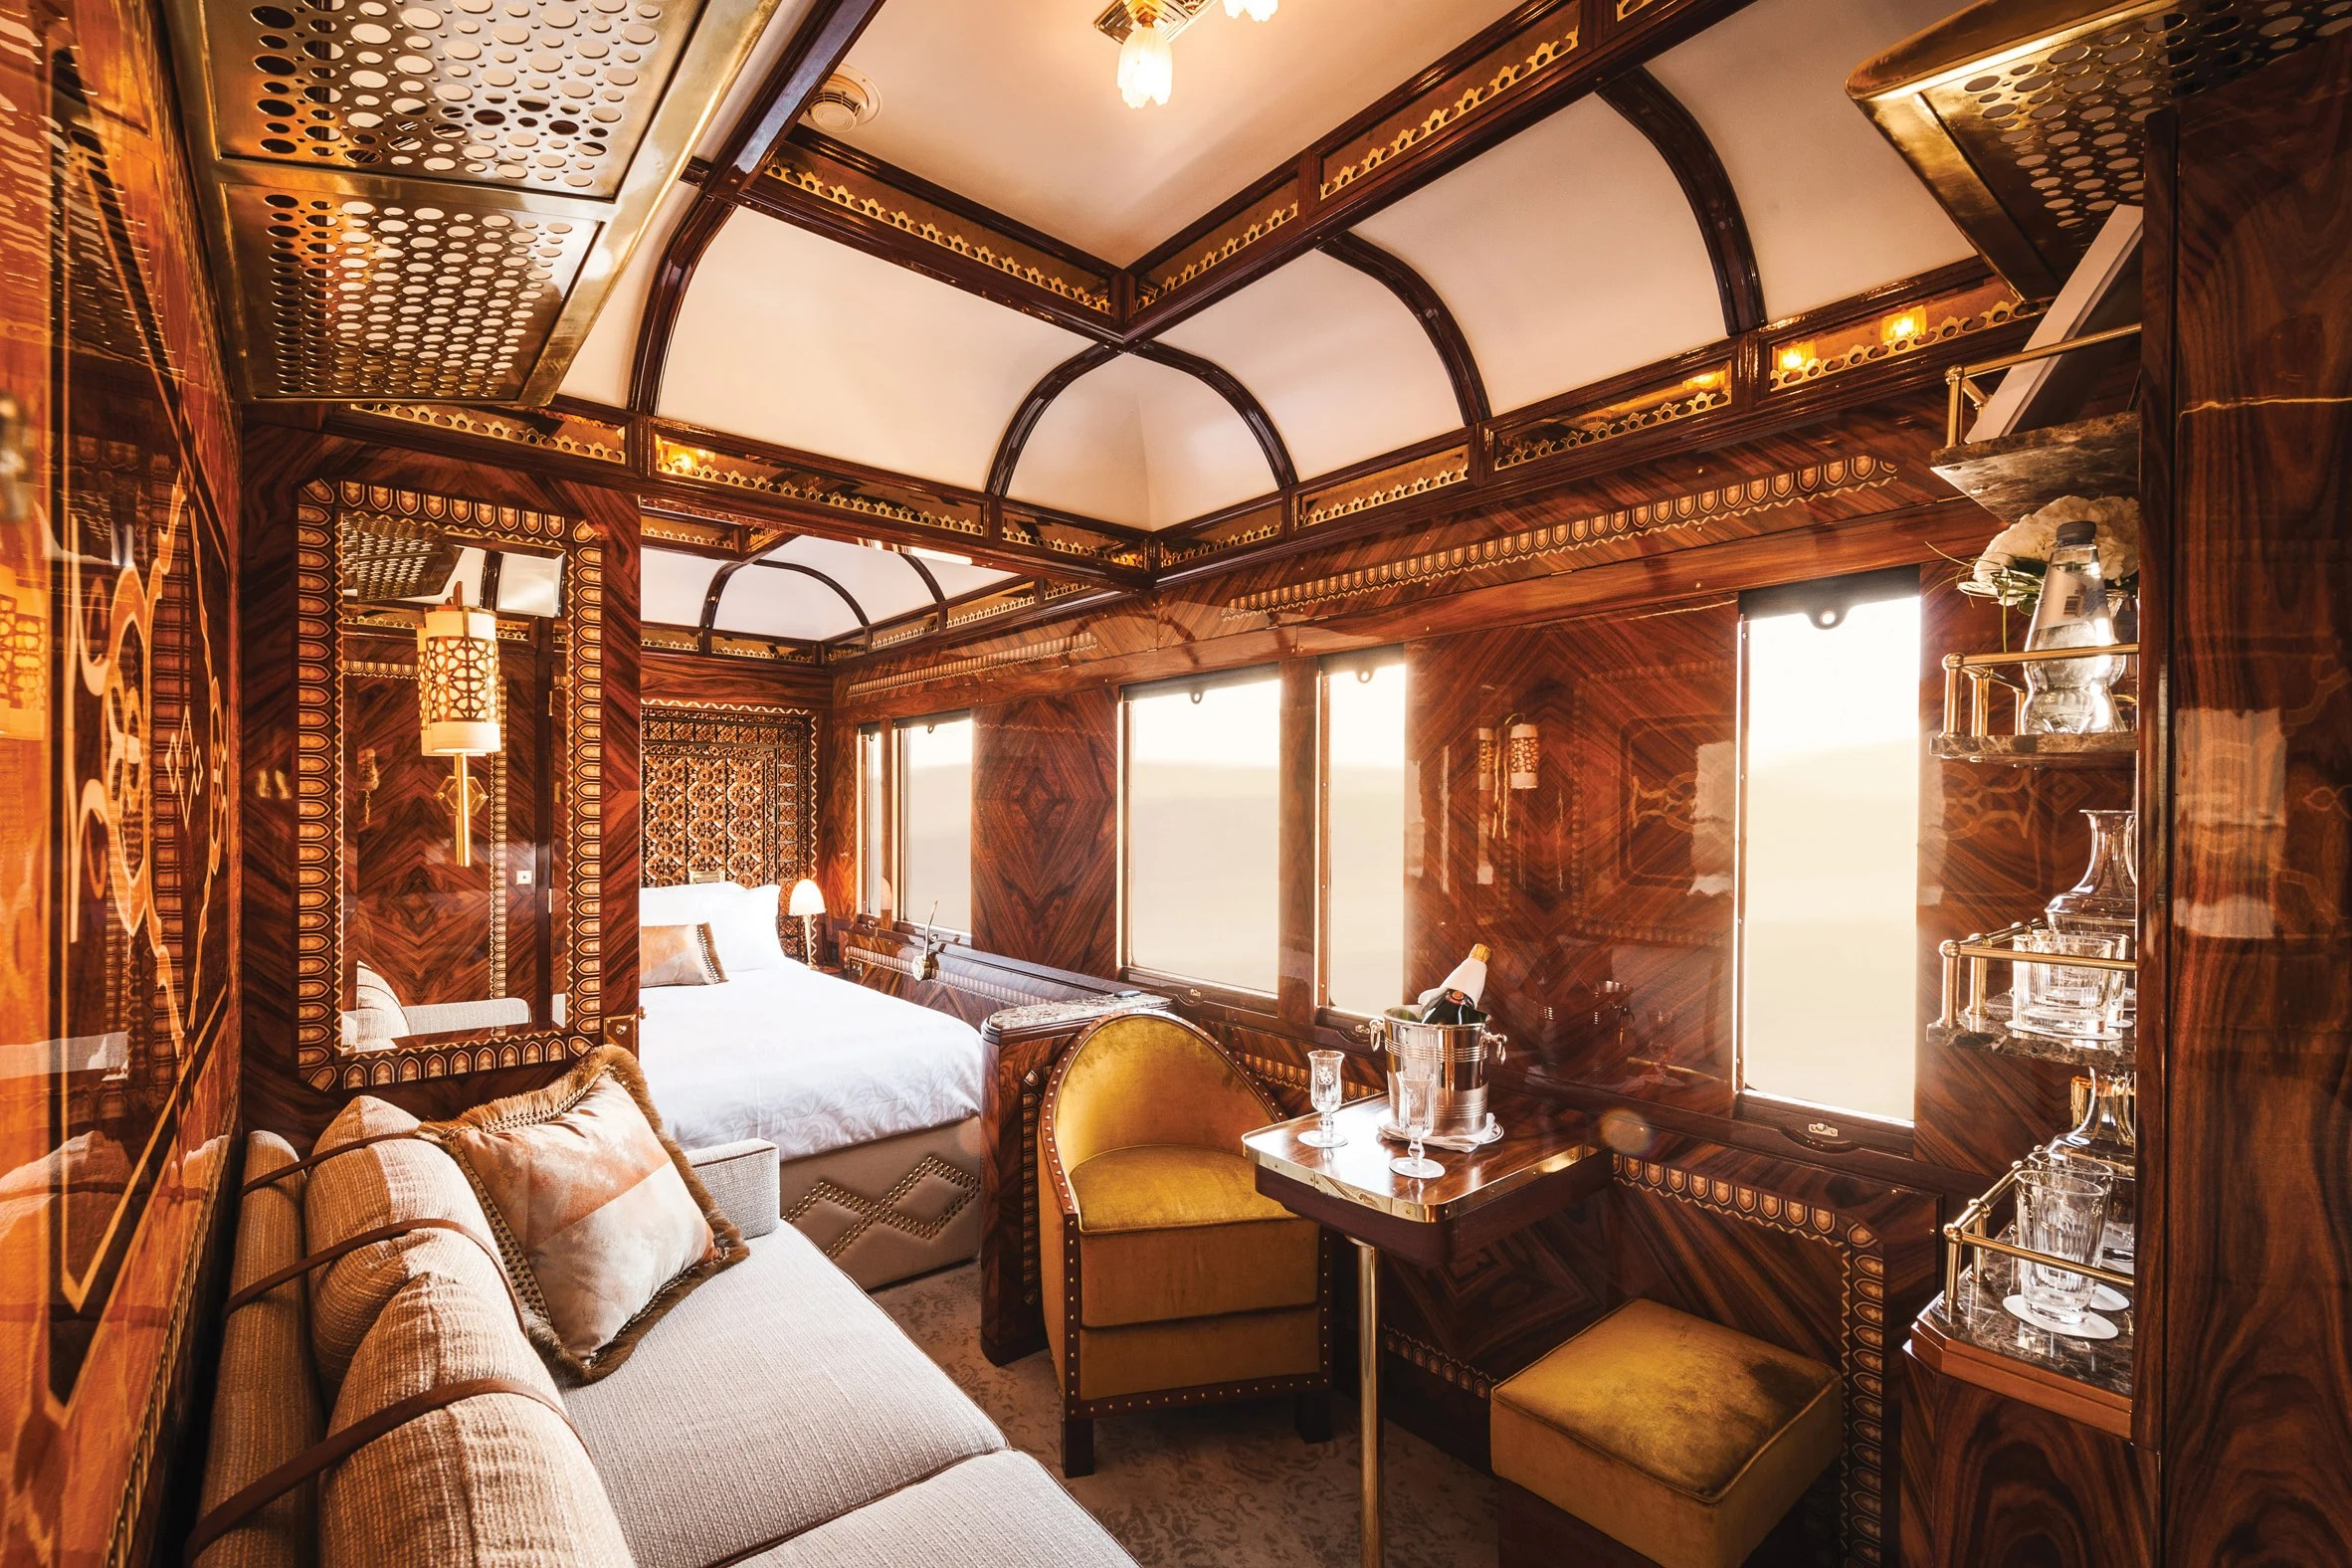 The Belmond Simplon-Orient Express won the Suites category at the AHEAD Global awards, which were held at the Ham Yard Hotel in London